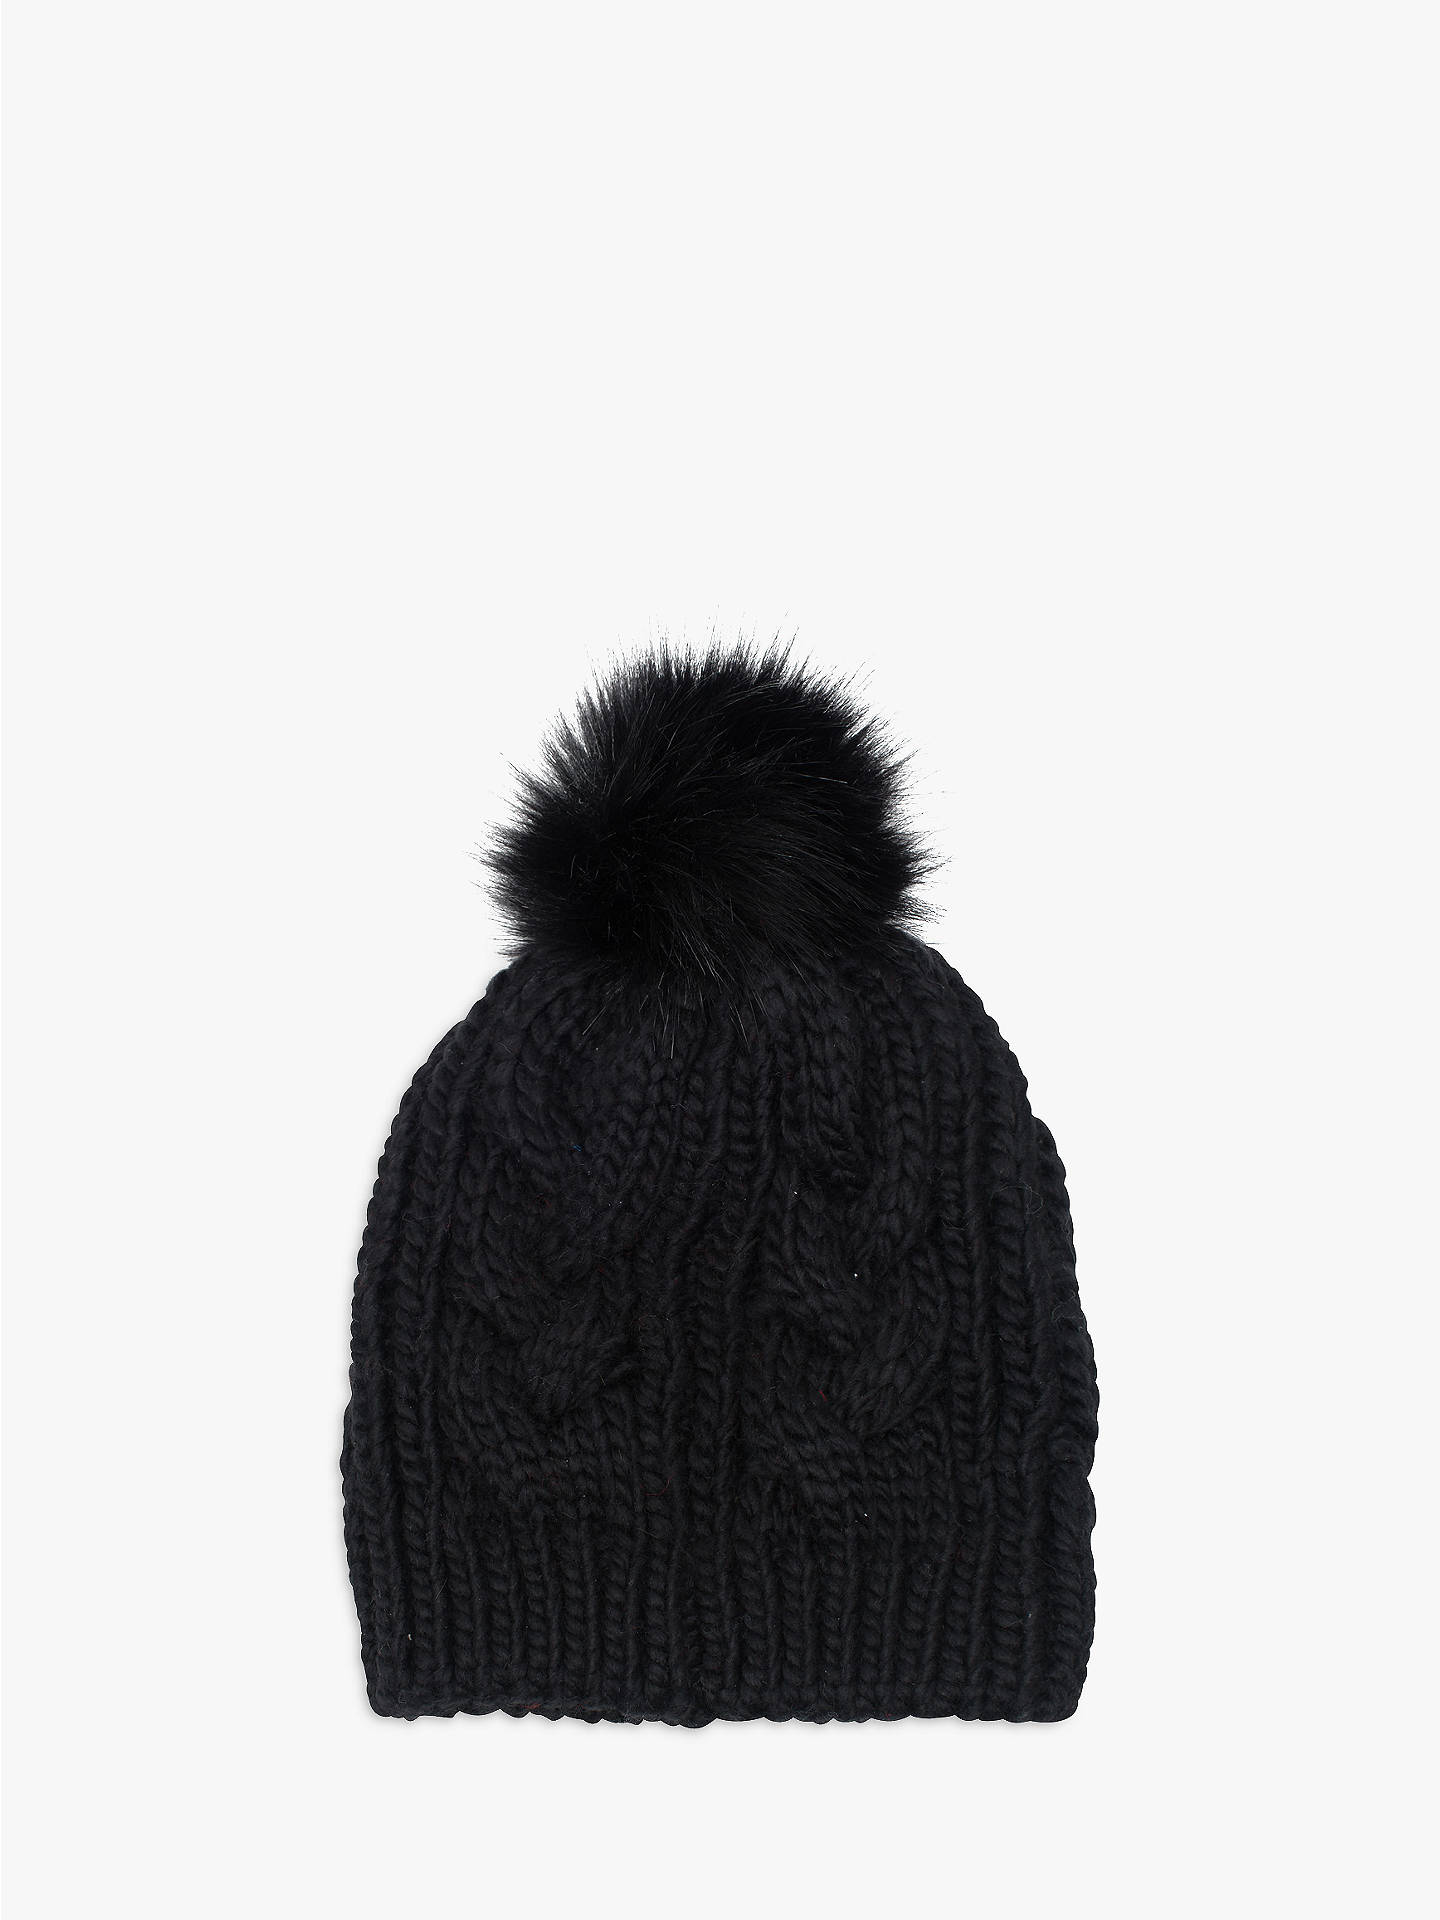 efc42cbd6df Buy French Connection Cable Knit Faux Fur Pom Pom Beanie Hat